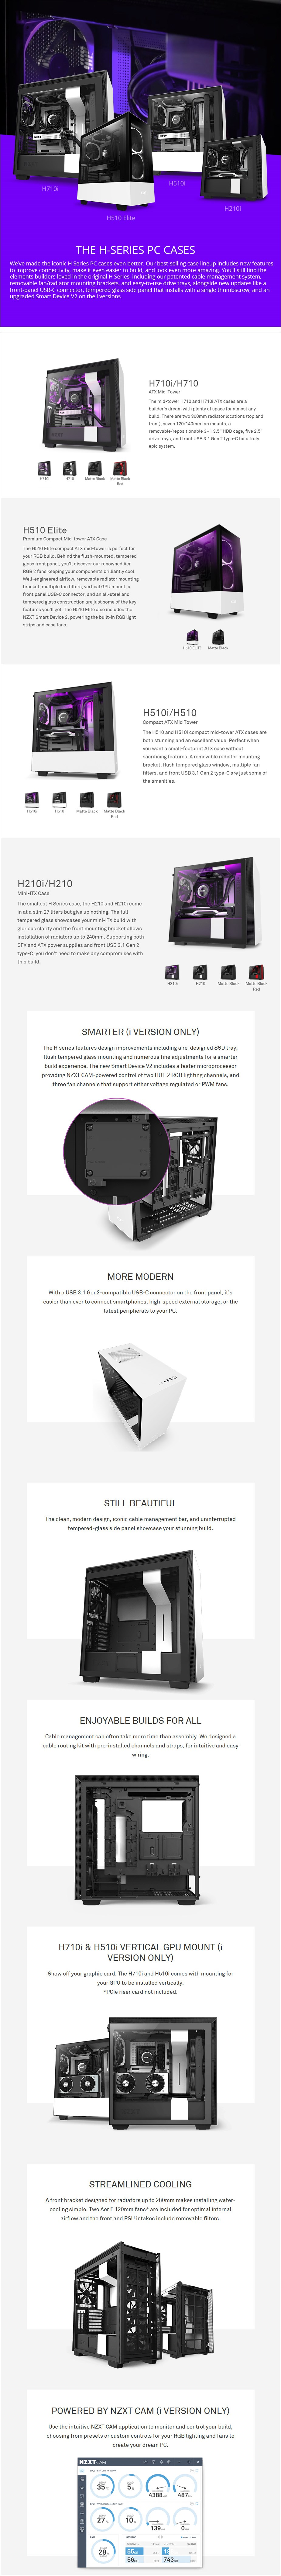 NZXT H510 Tempered Glass Mid-Tower ATX Case - Overview 1